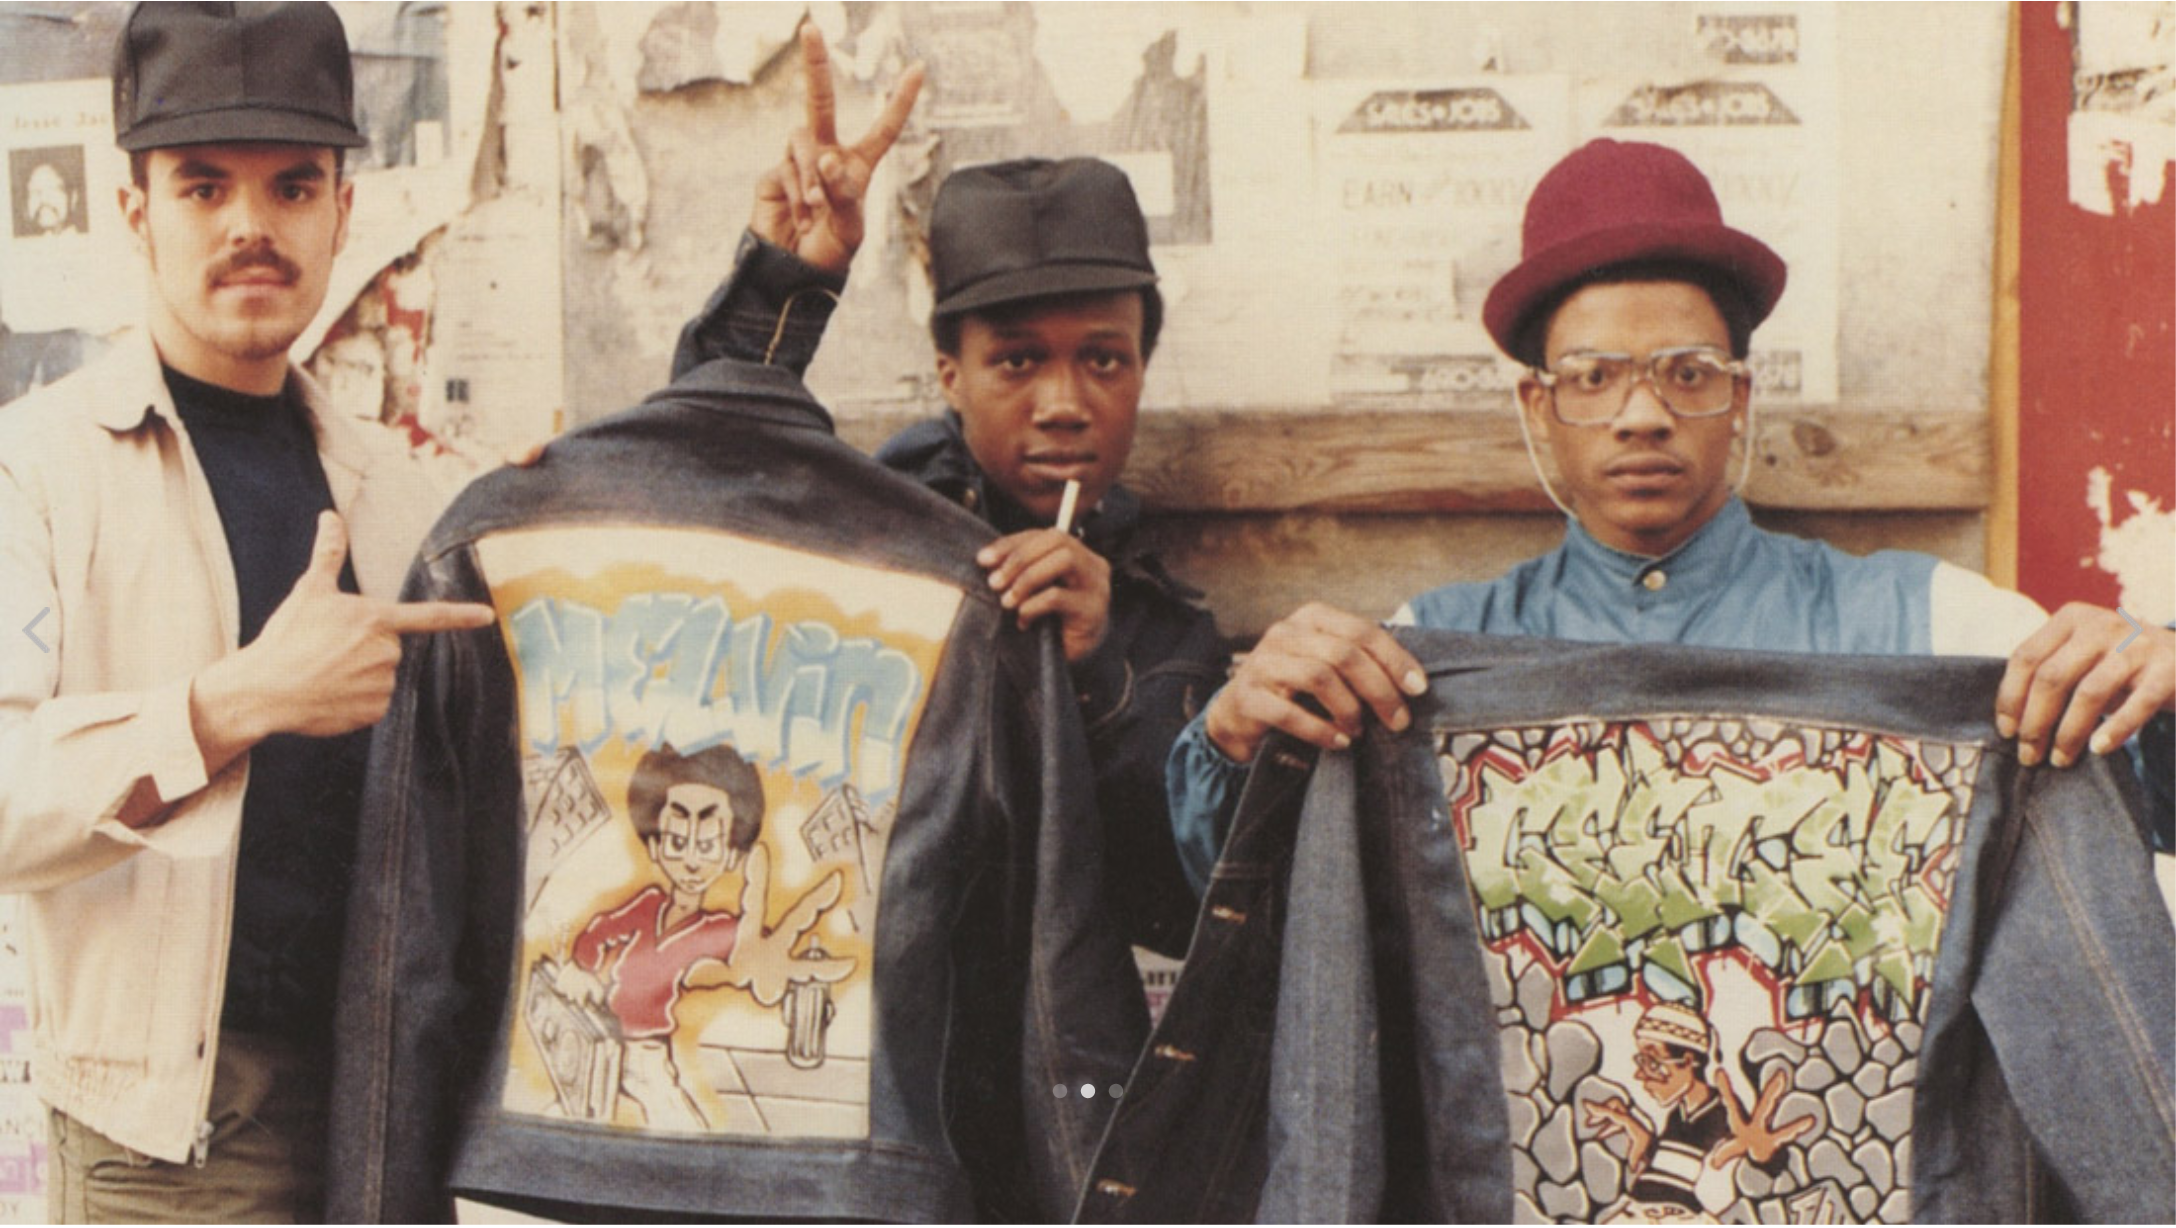 The Decades of Hip Hop Fashion The 70s & Early 80s